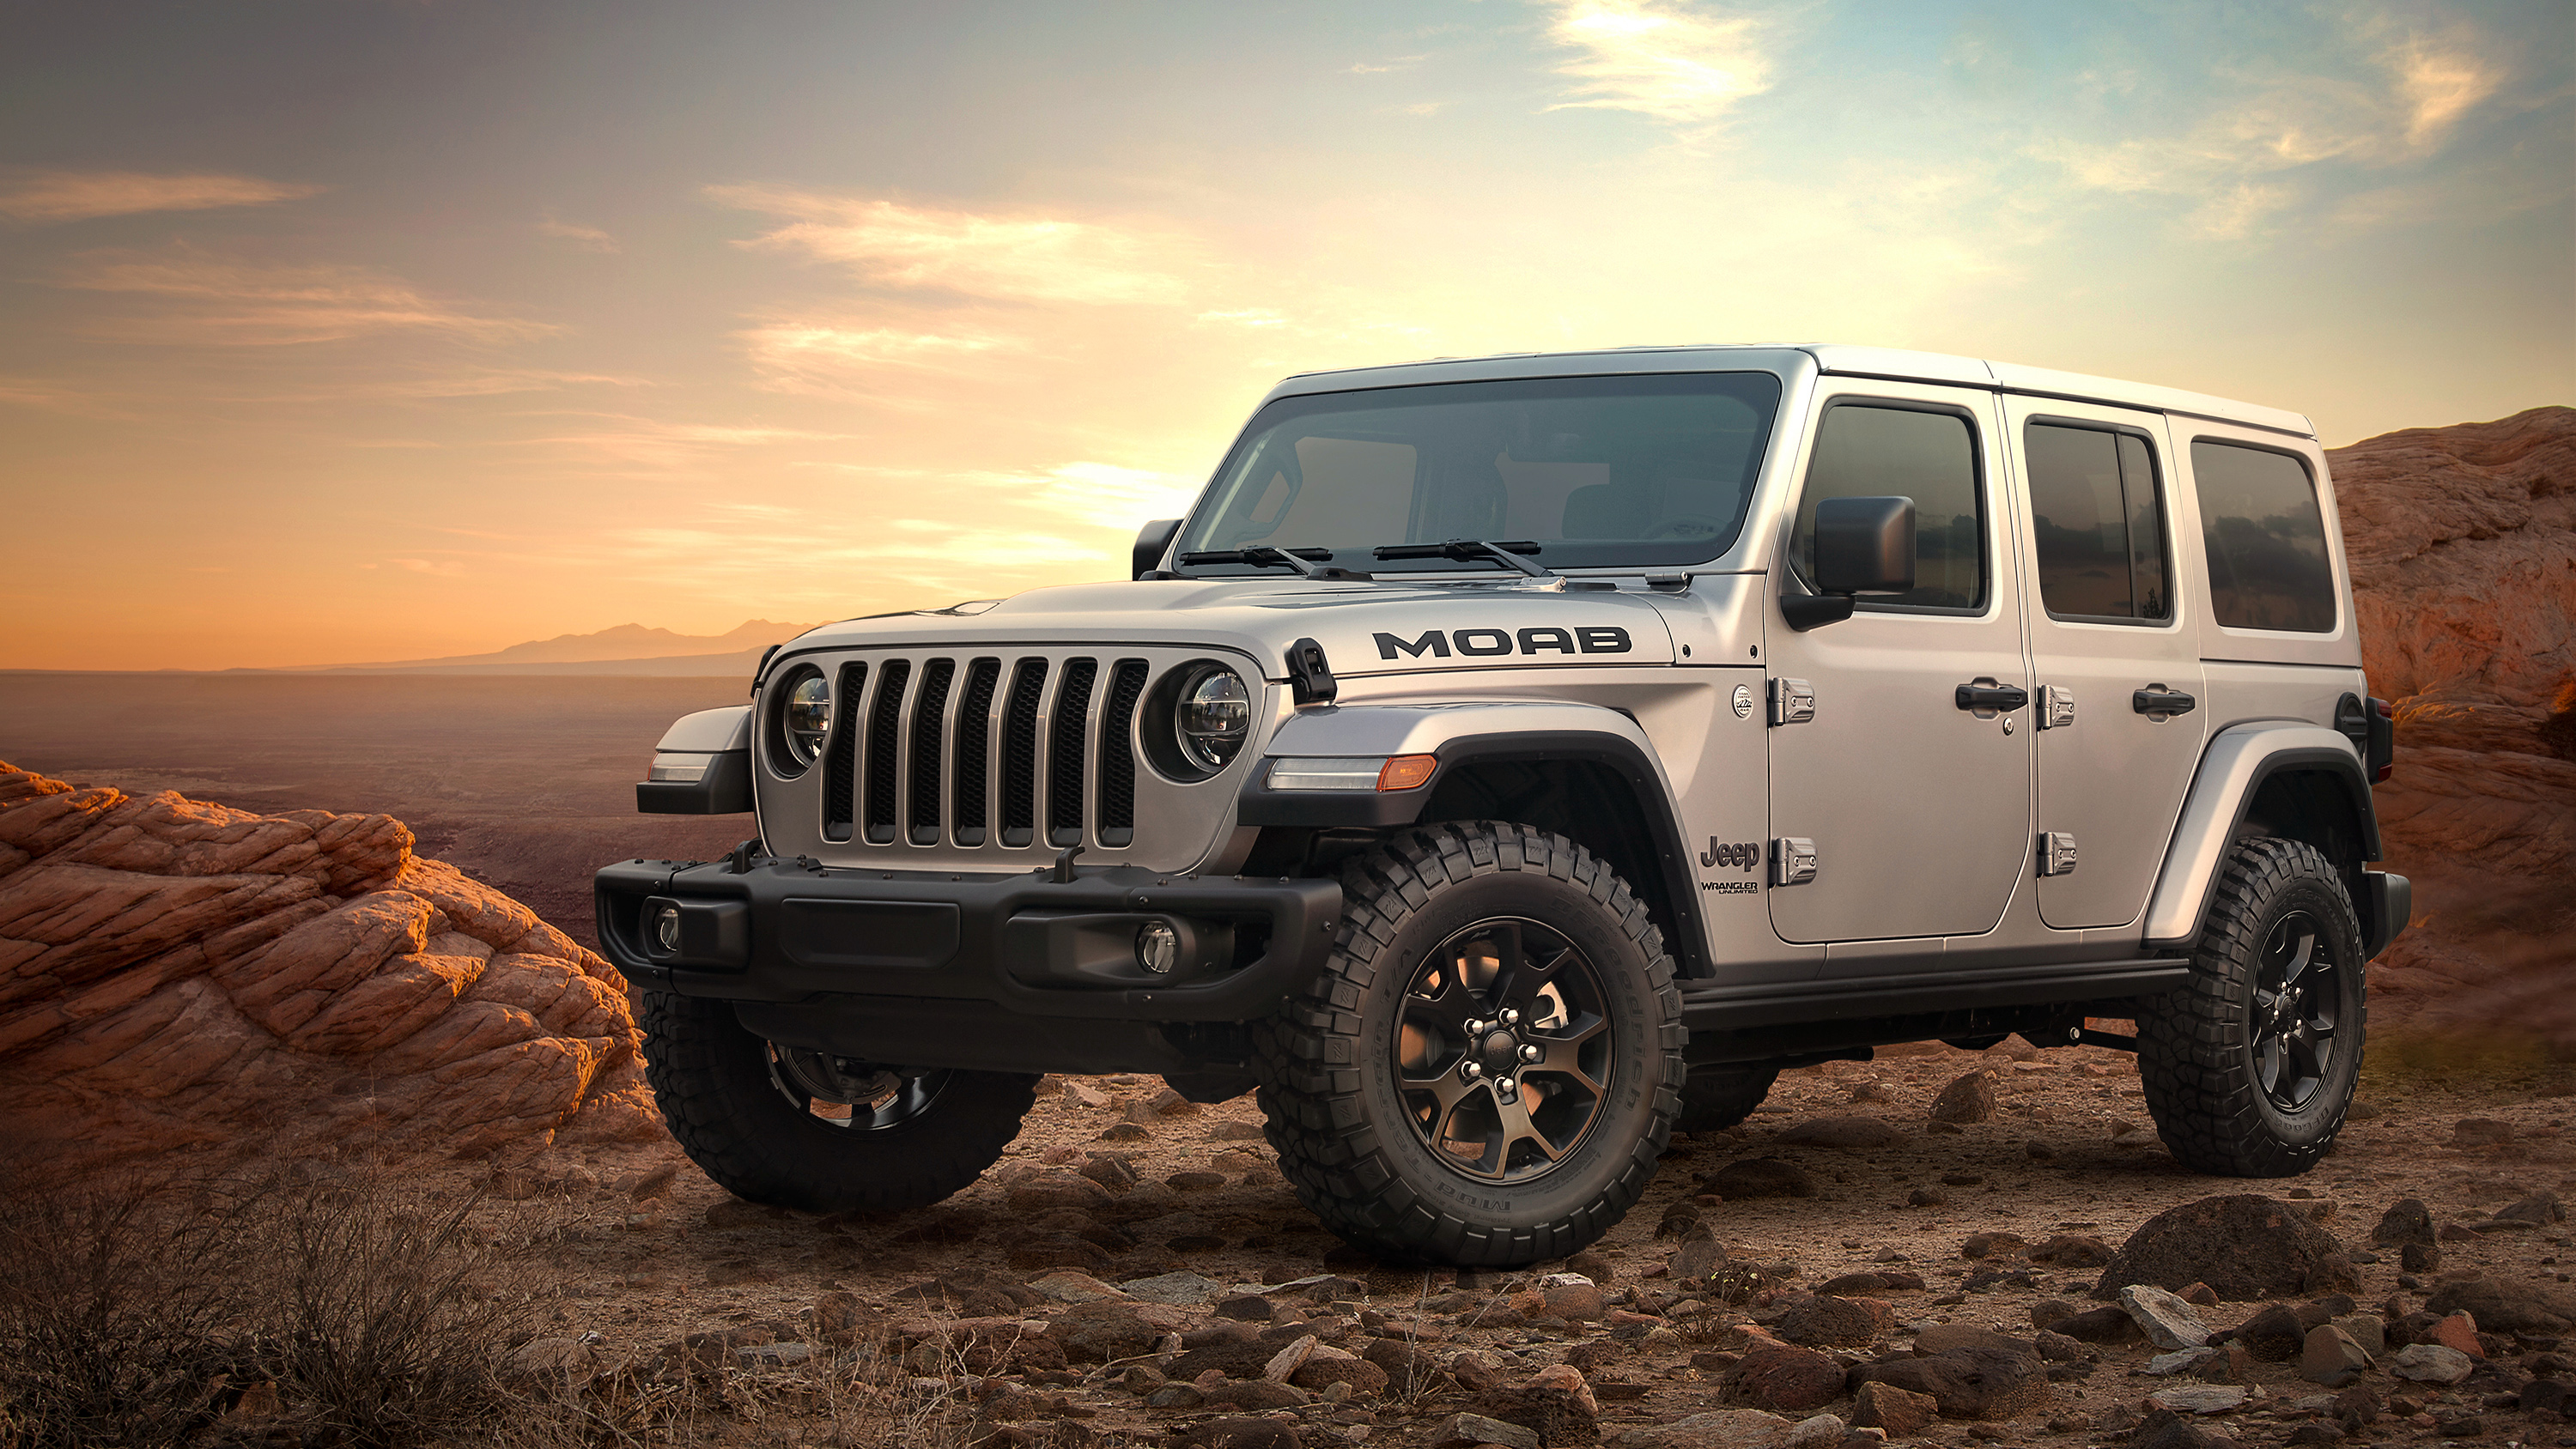 2018 Jeep Wrangler Unlimited Moab Edition Wallpapers Hd